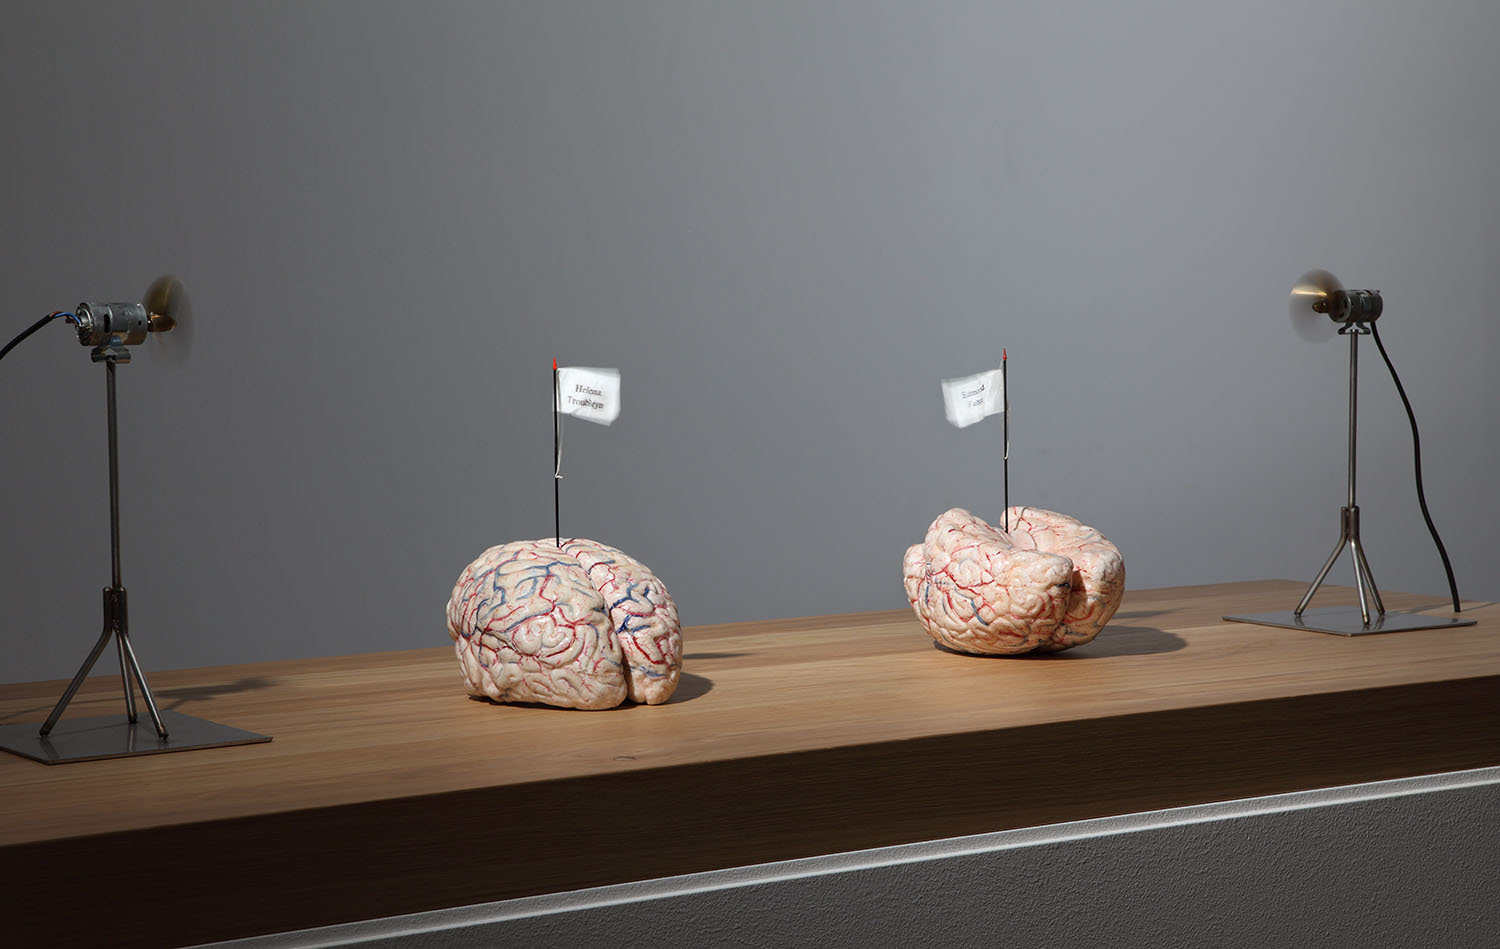 Jan Fabre, The brains of my mother and my father, 2006, silicon, textile, metal, oak, 23x15x21 cm (2 brains), base 110x110x50 cm, motors 29x15.3x14.9 cm Photo Attilio Maranzano © Angelos bvba